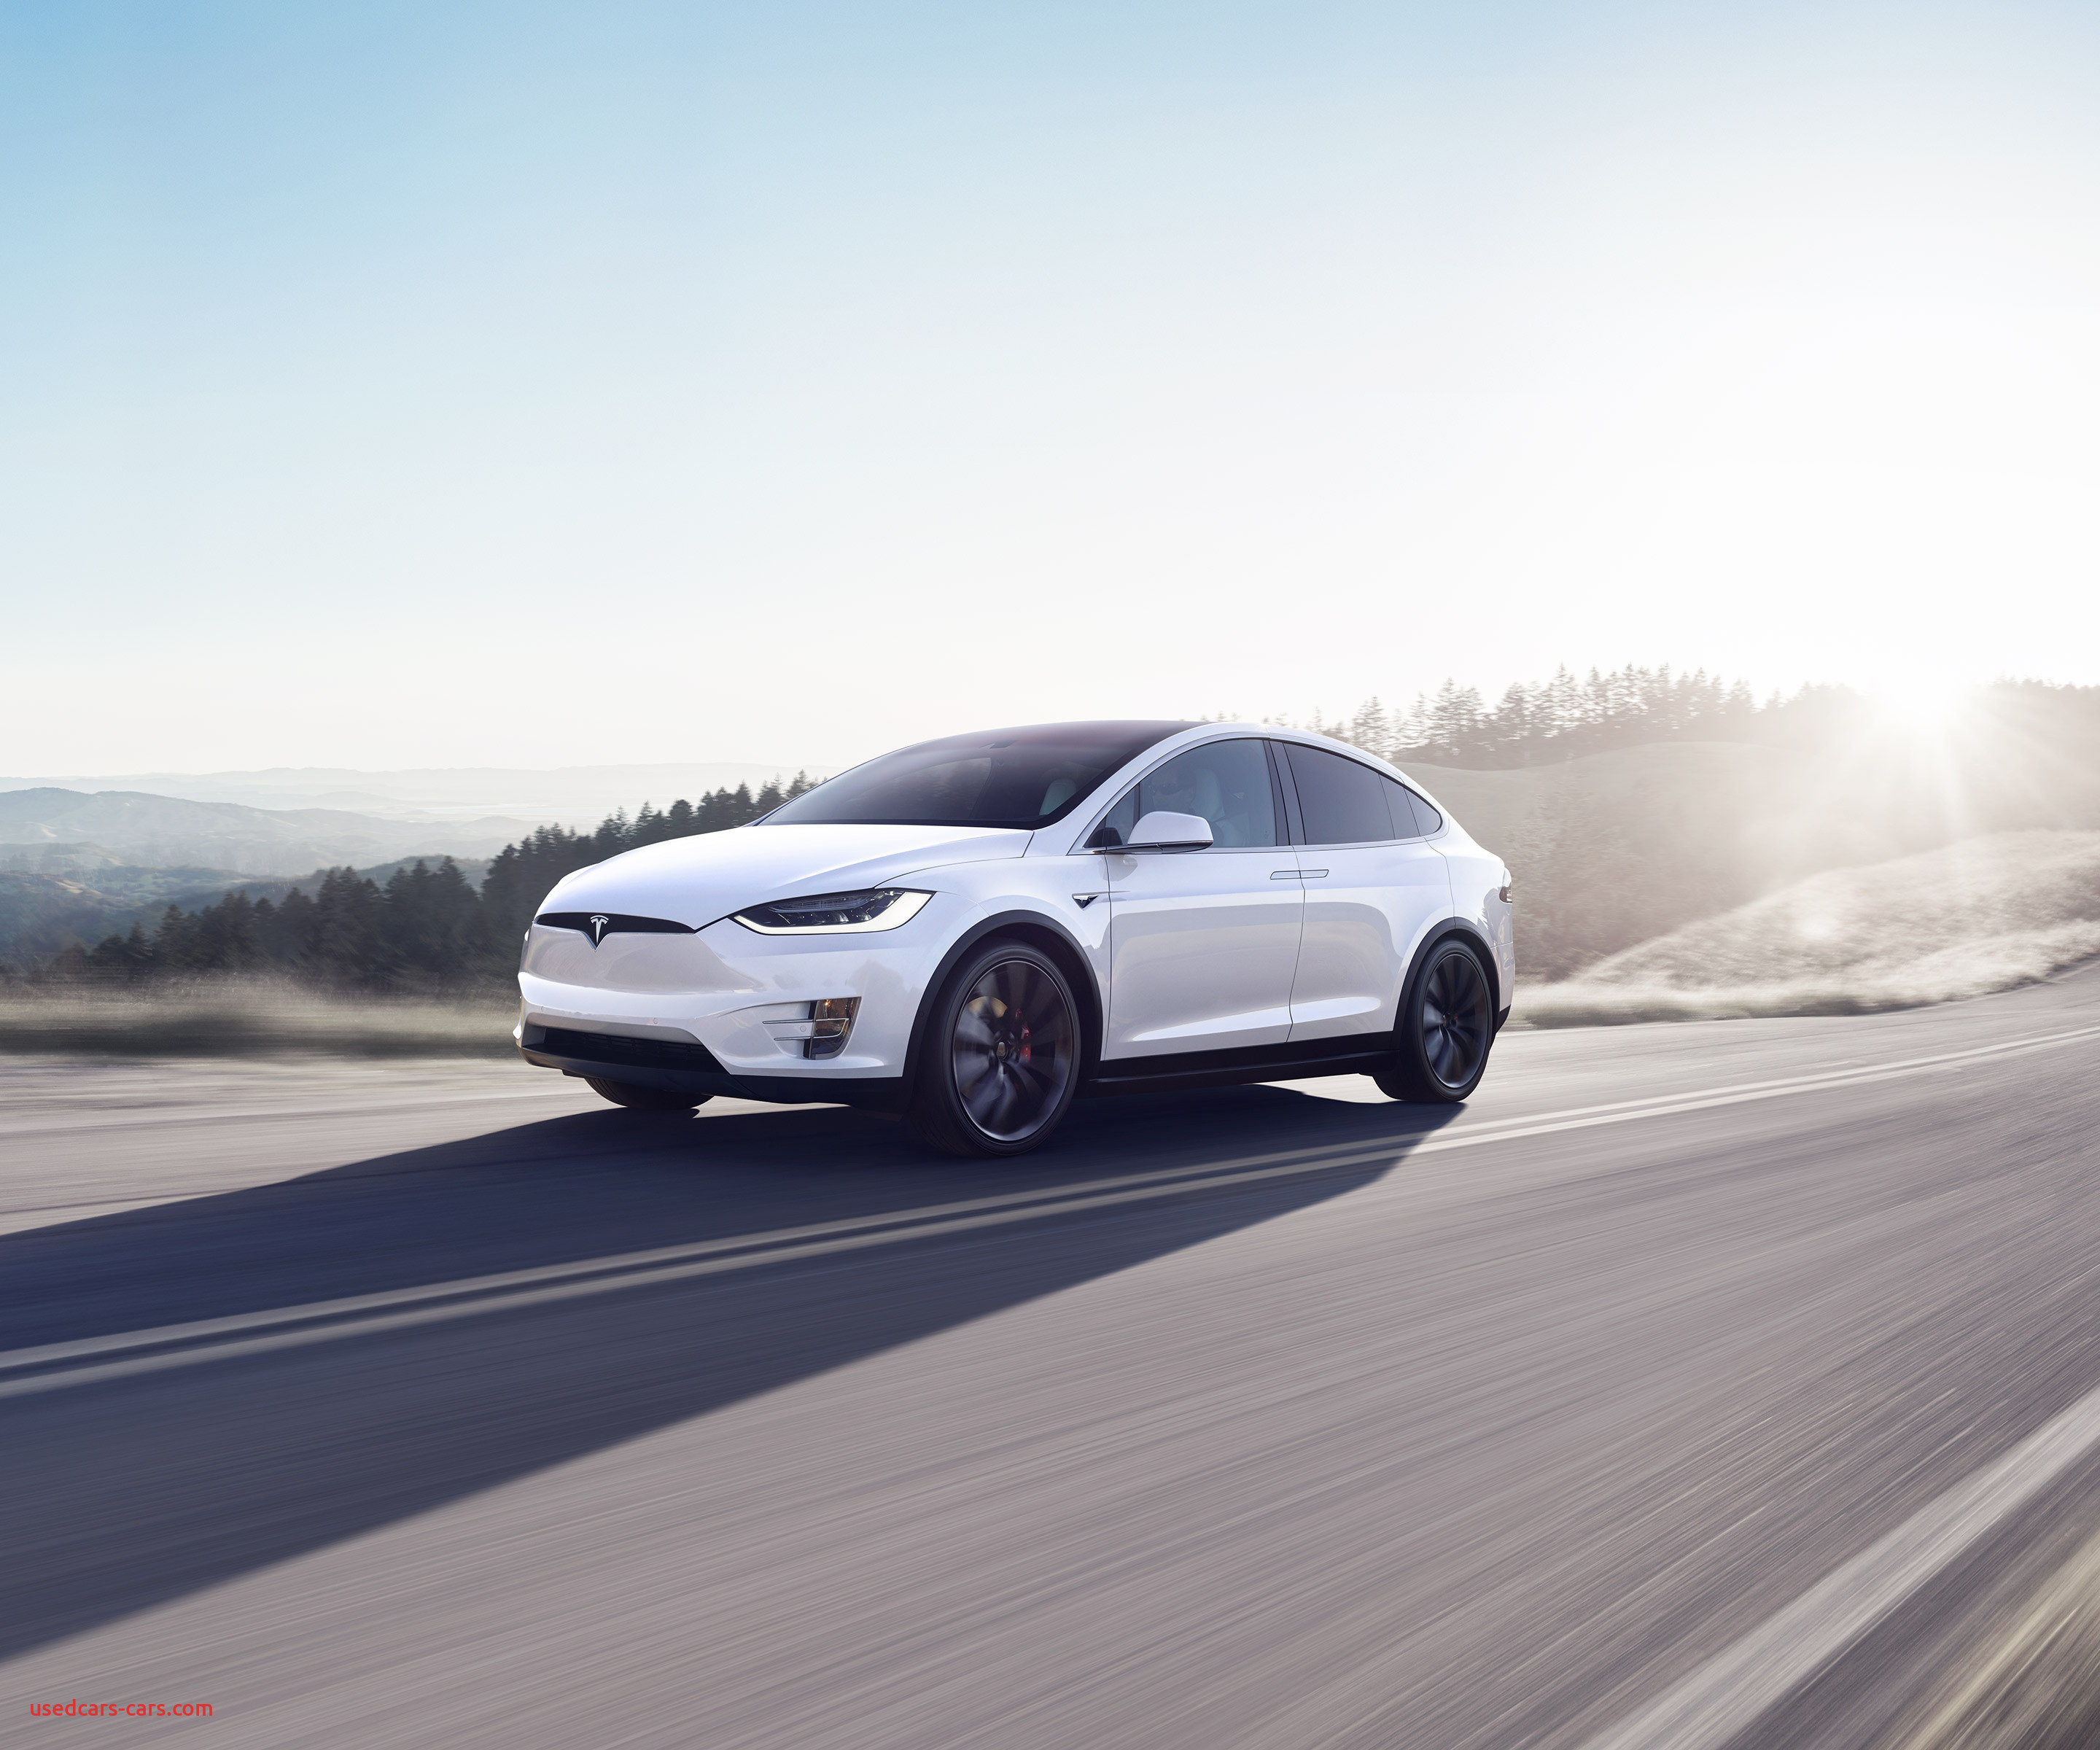 Used Tesla Model X Best Of Electric Cars solar & Clean Energy